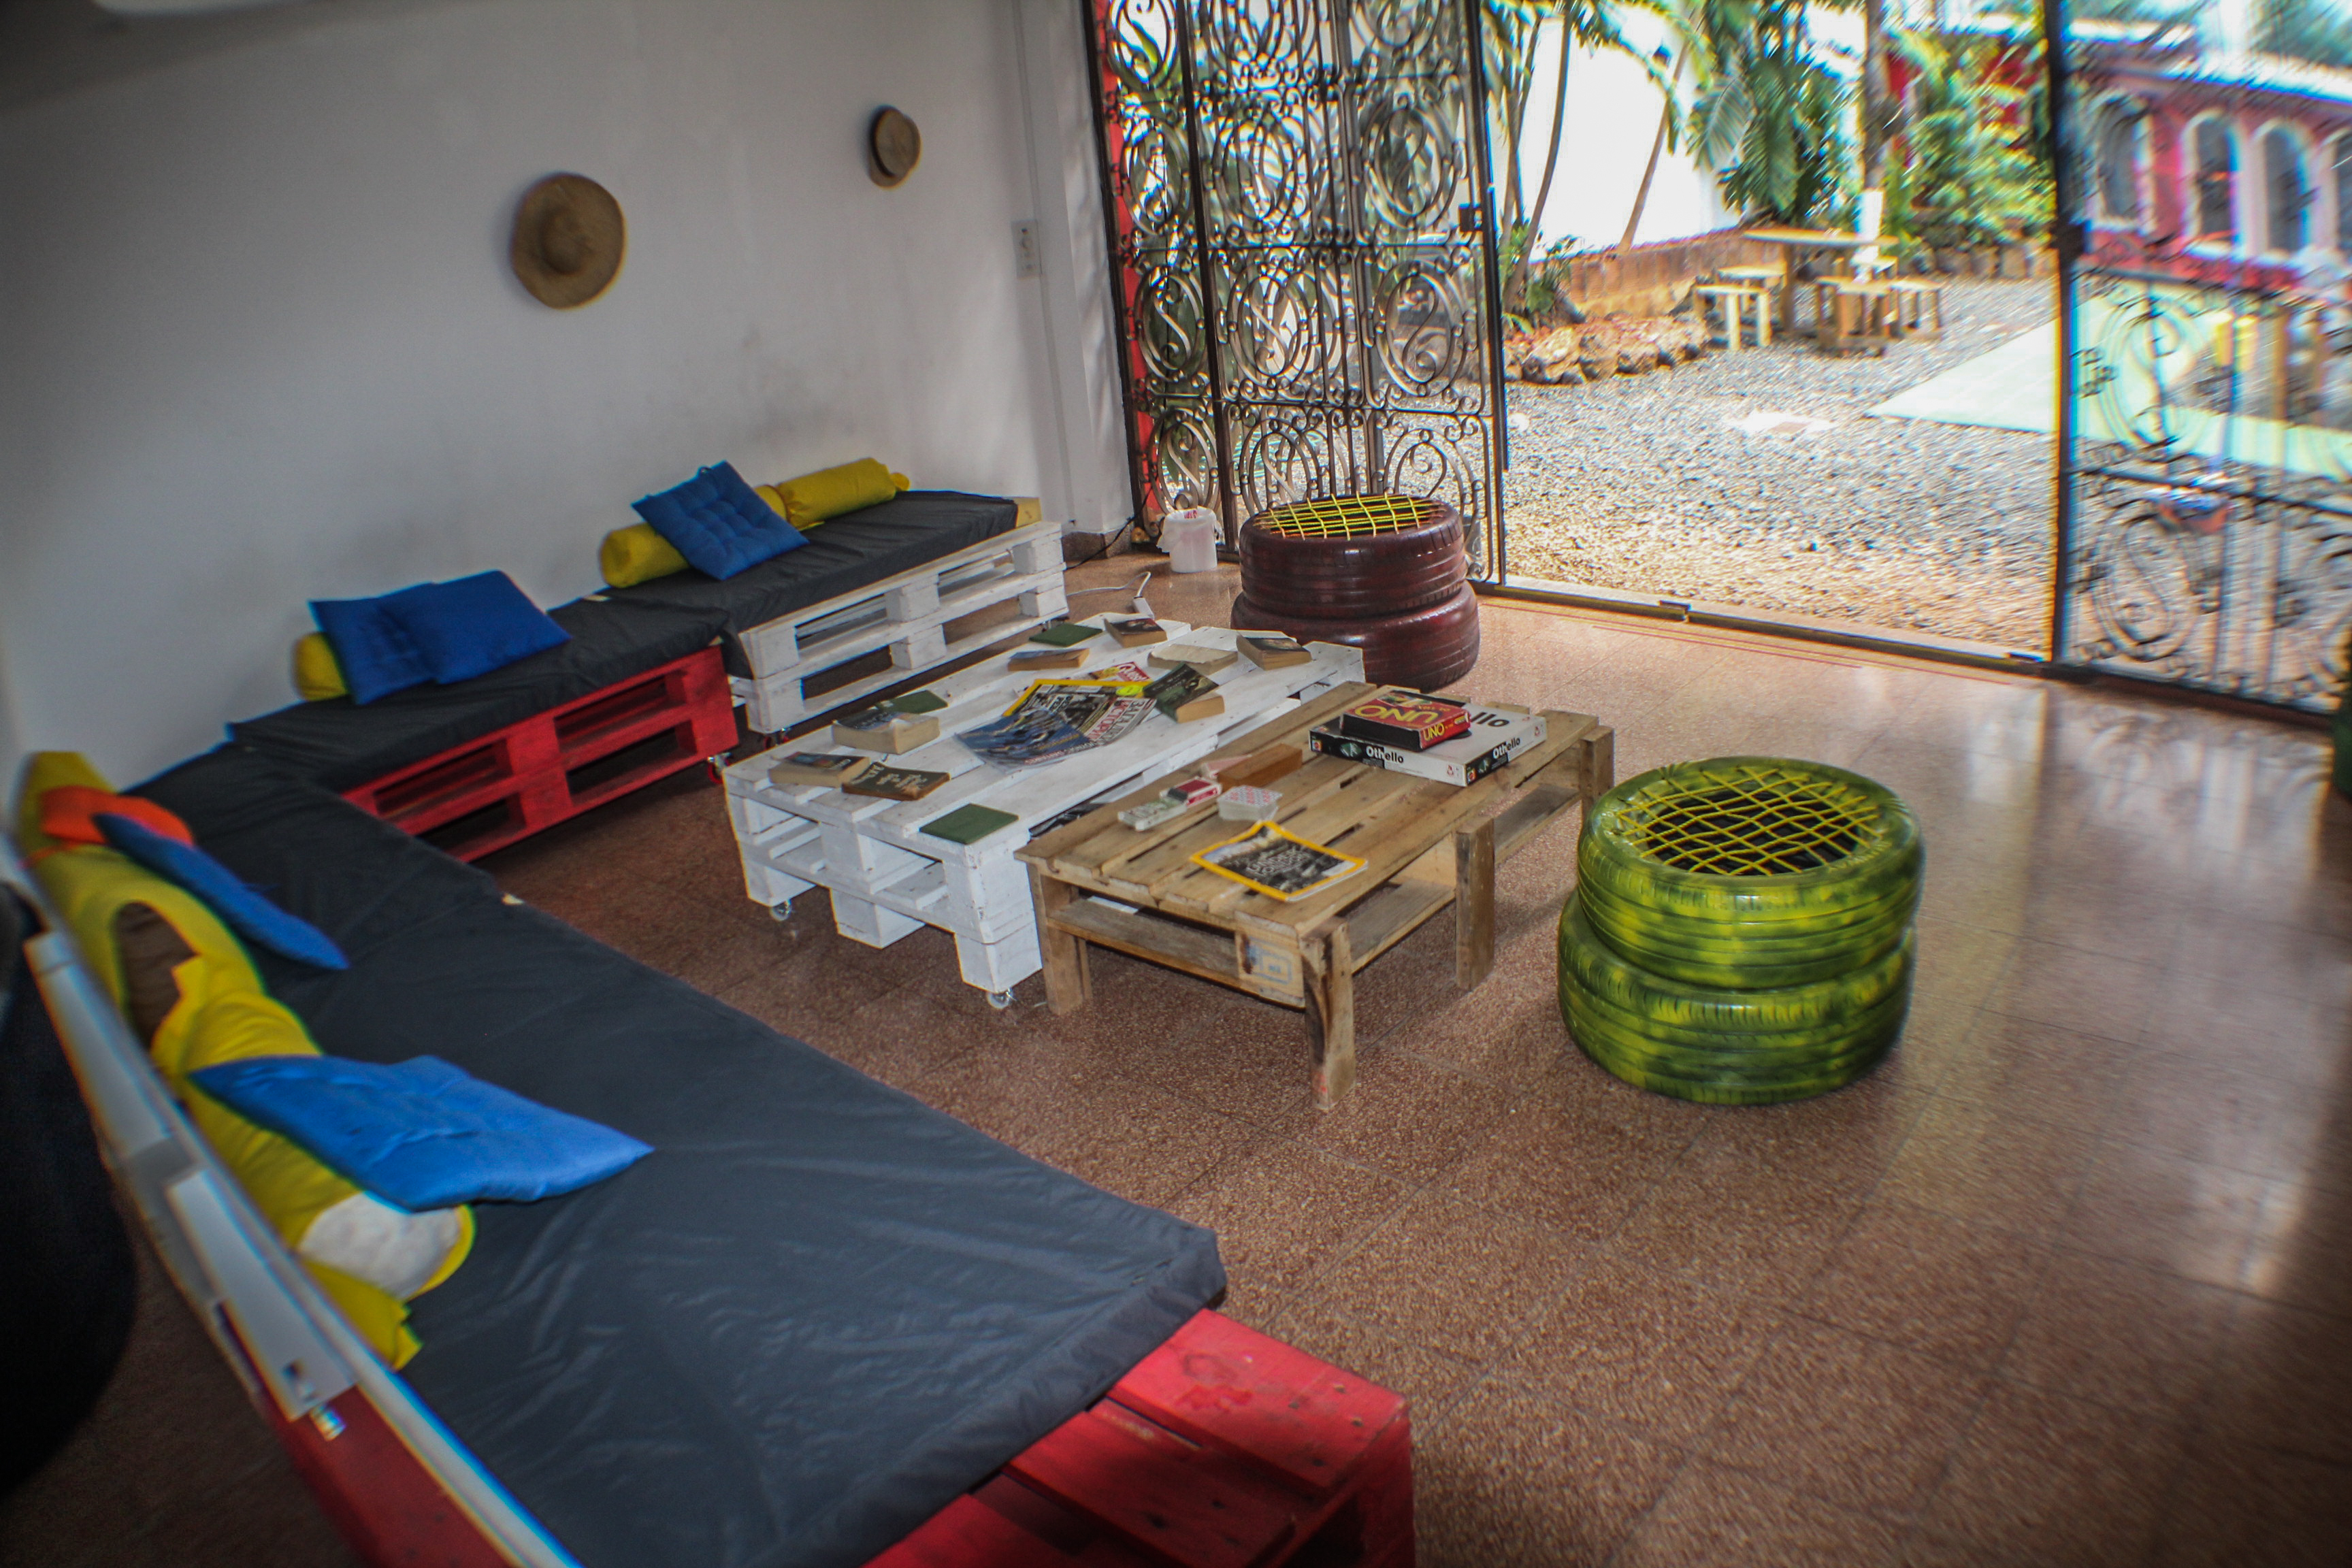 Spanish Panama hostel partners . Accommodations at our Spanish school includes hostel shared dorm with A/C and breakfast.